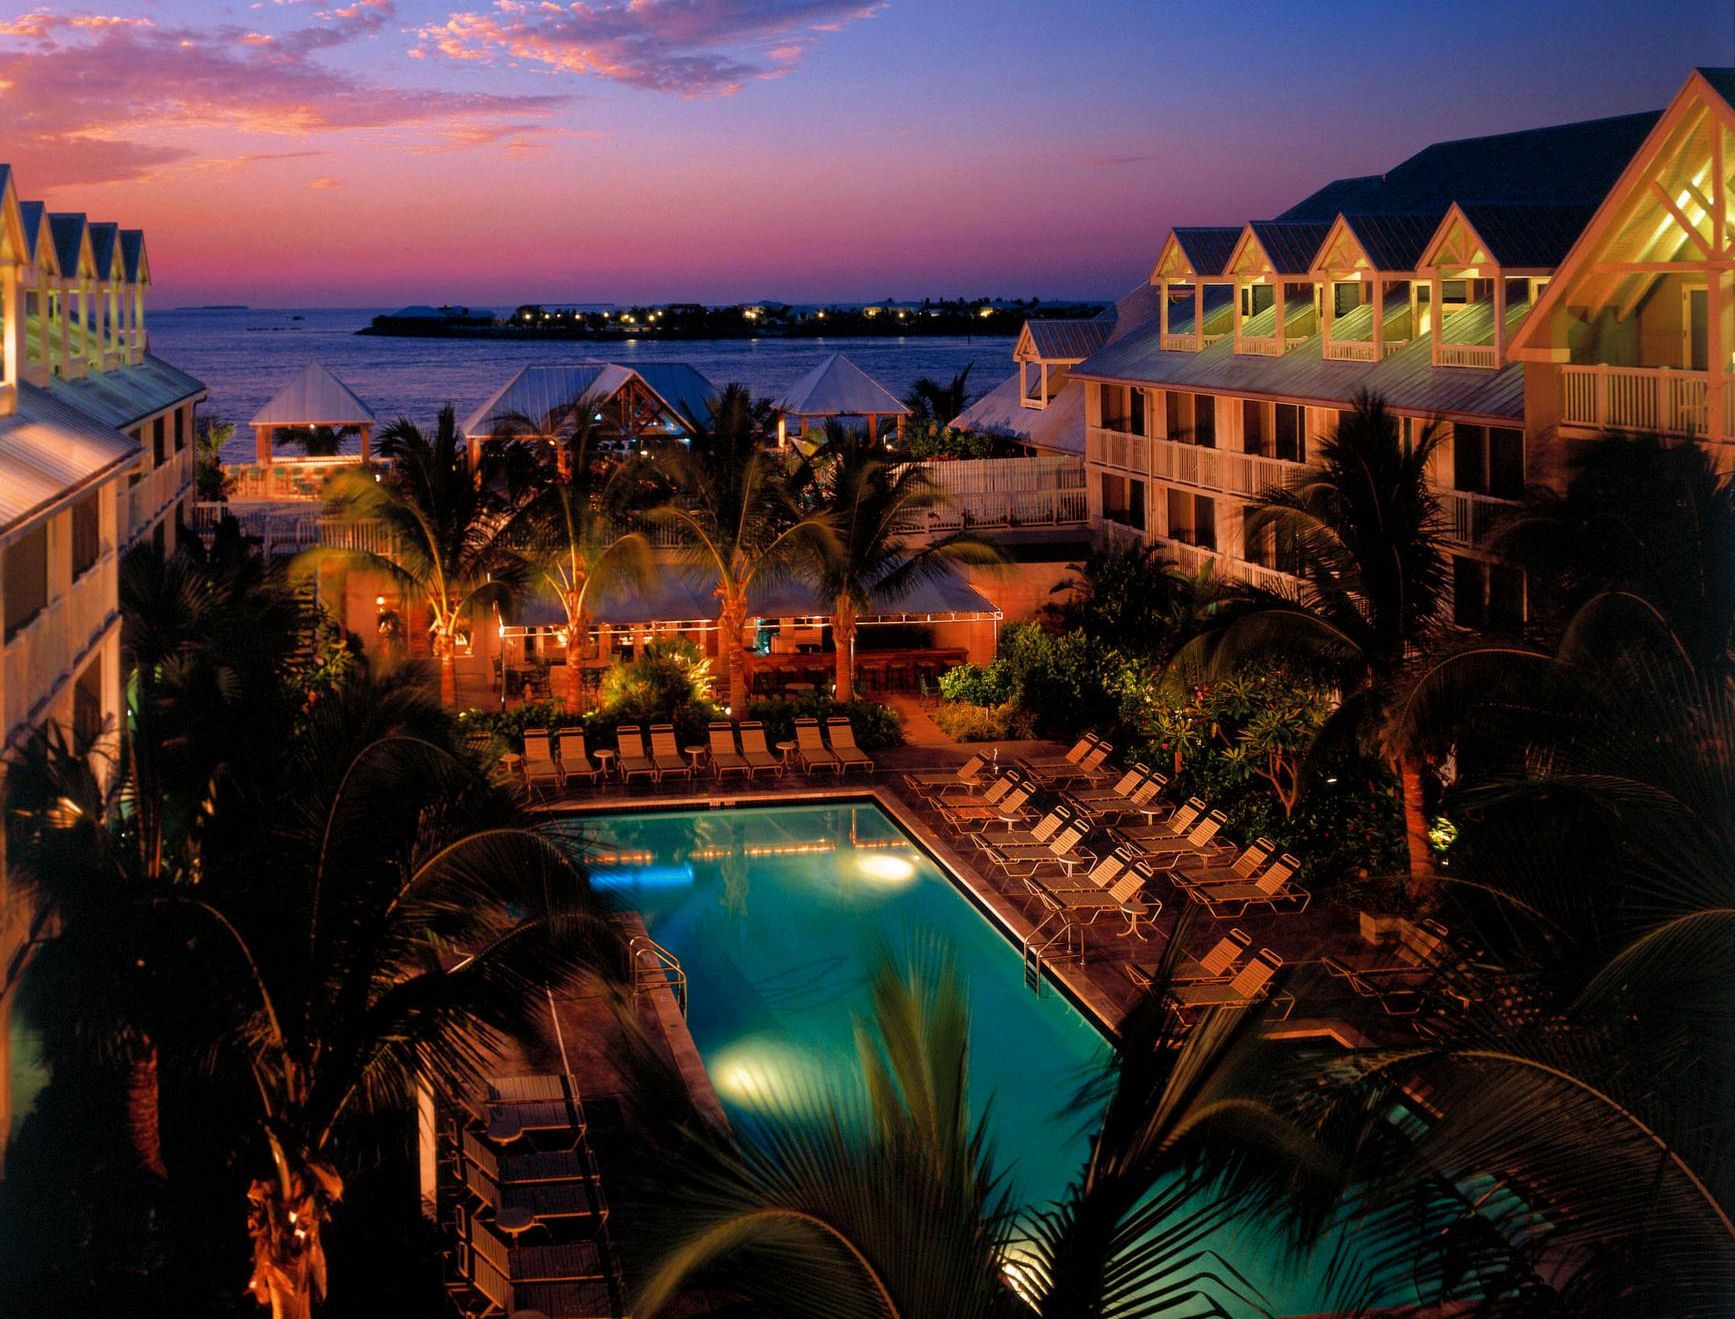 nighttime pool area at the westin key west resort  u0026 marina in key west florida  or for reservations  stayed here my first time to key west  key west vacation rentals or beachfront homes with good amenities      rh   pinterest